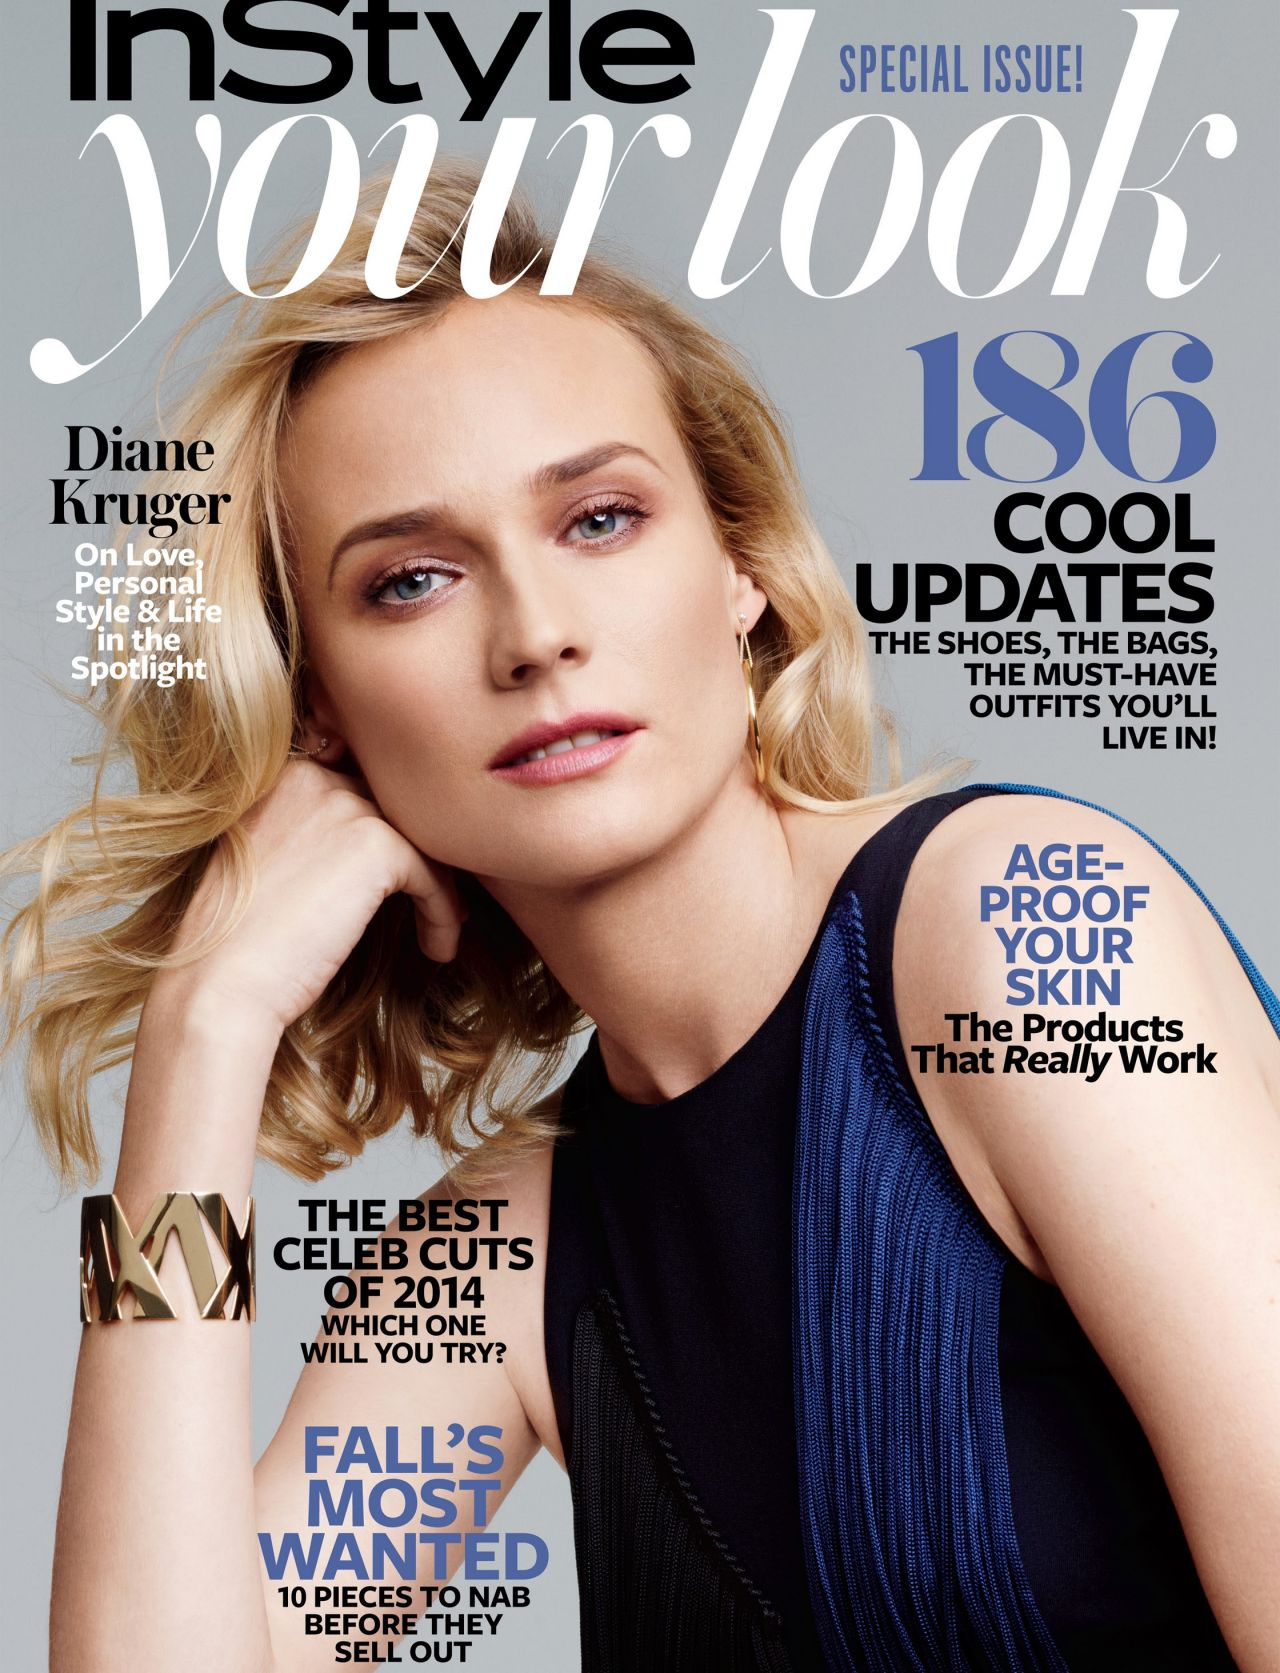 Diane Kruger - InStyle Magazine - Your Look Special (August 2014 Cover)